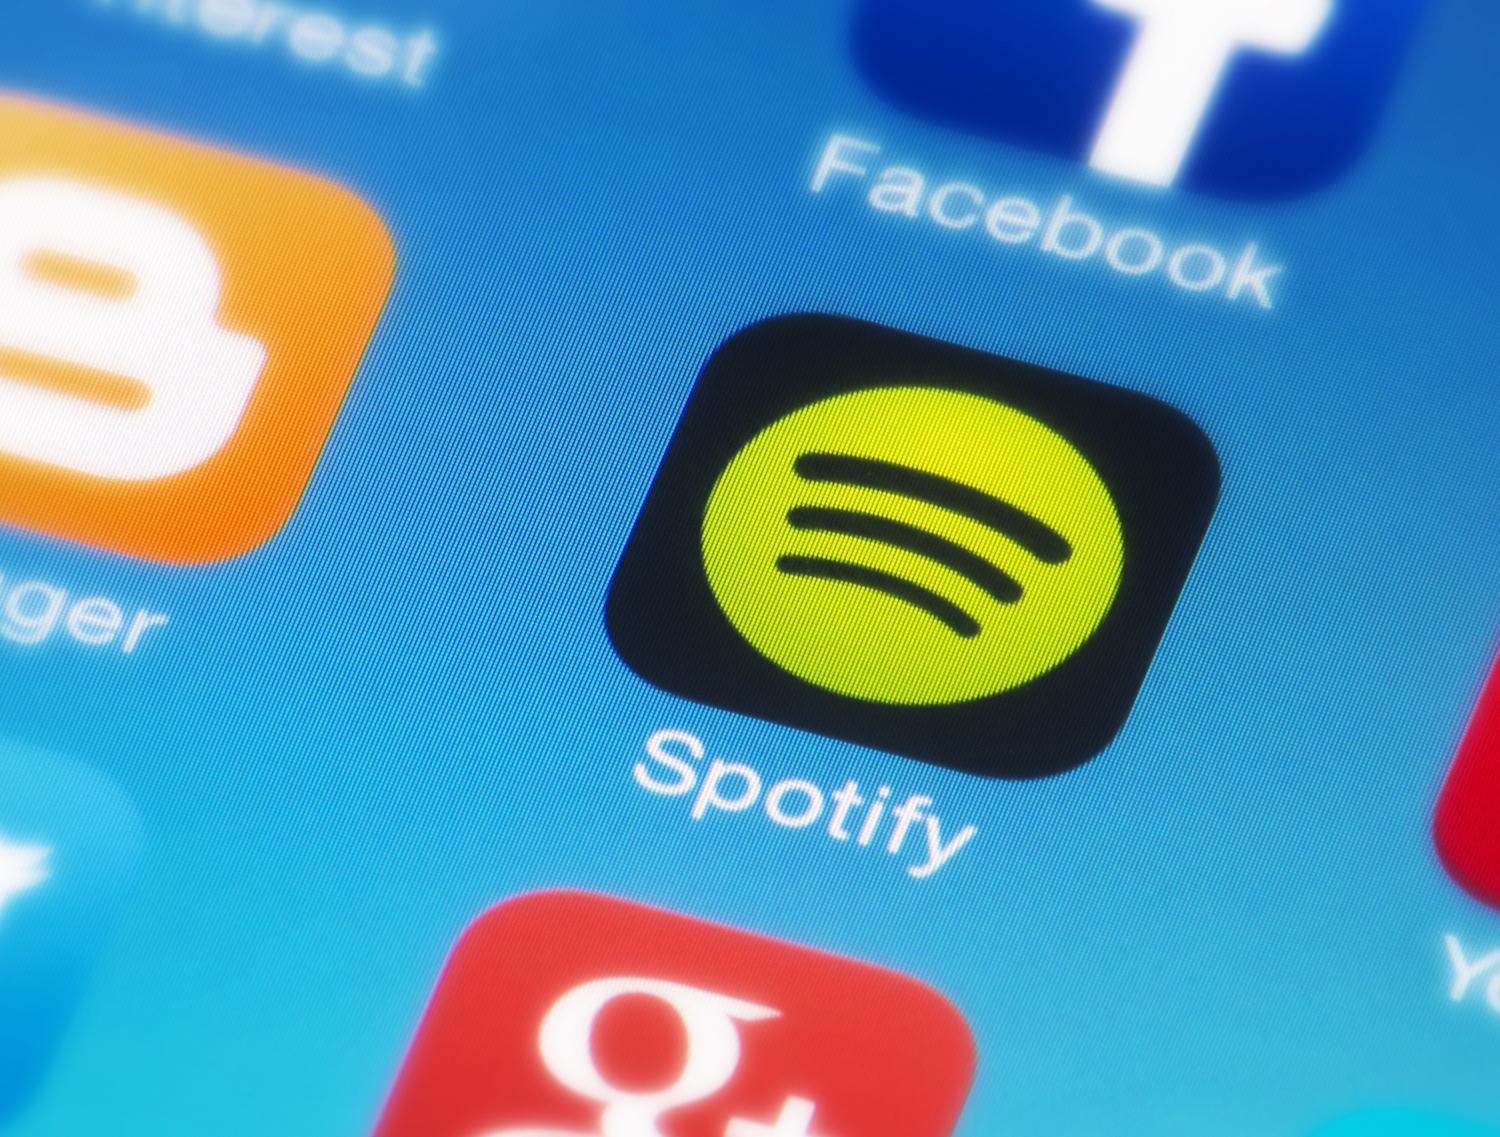 Crypto.com Appoints Head of Growth From Spotify